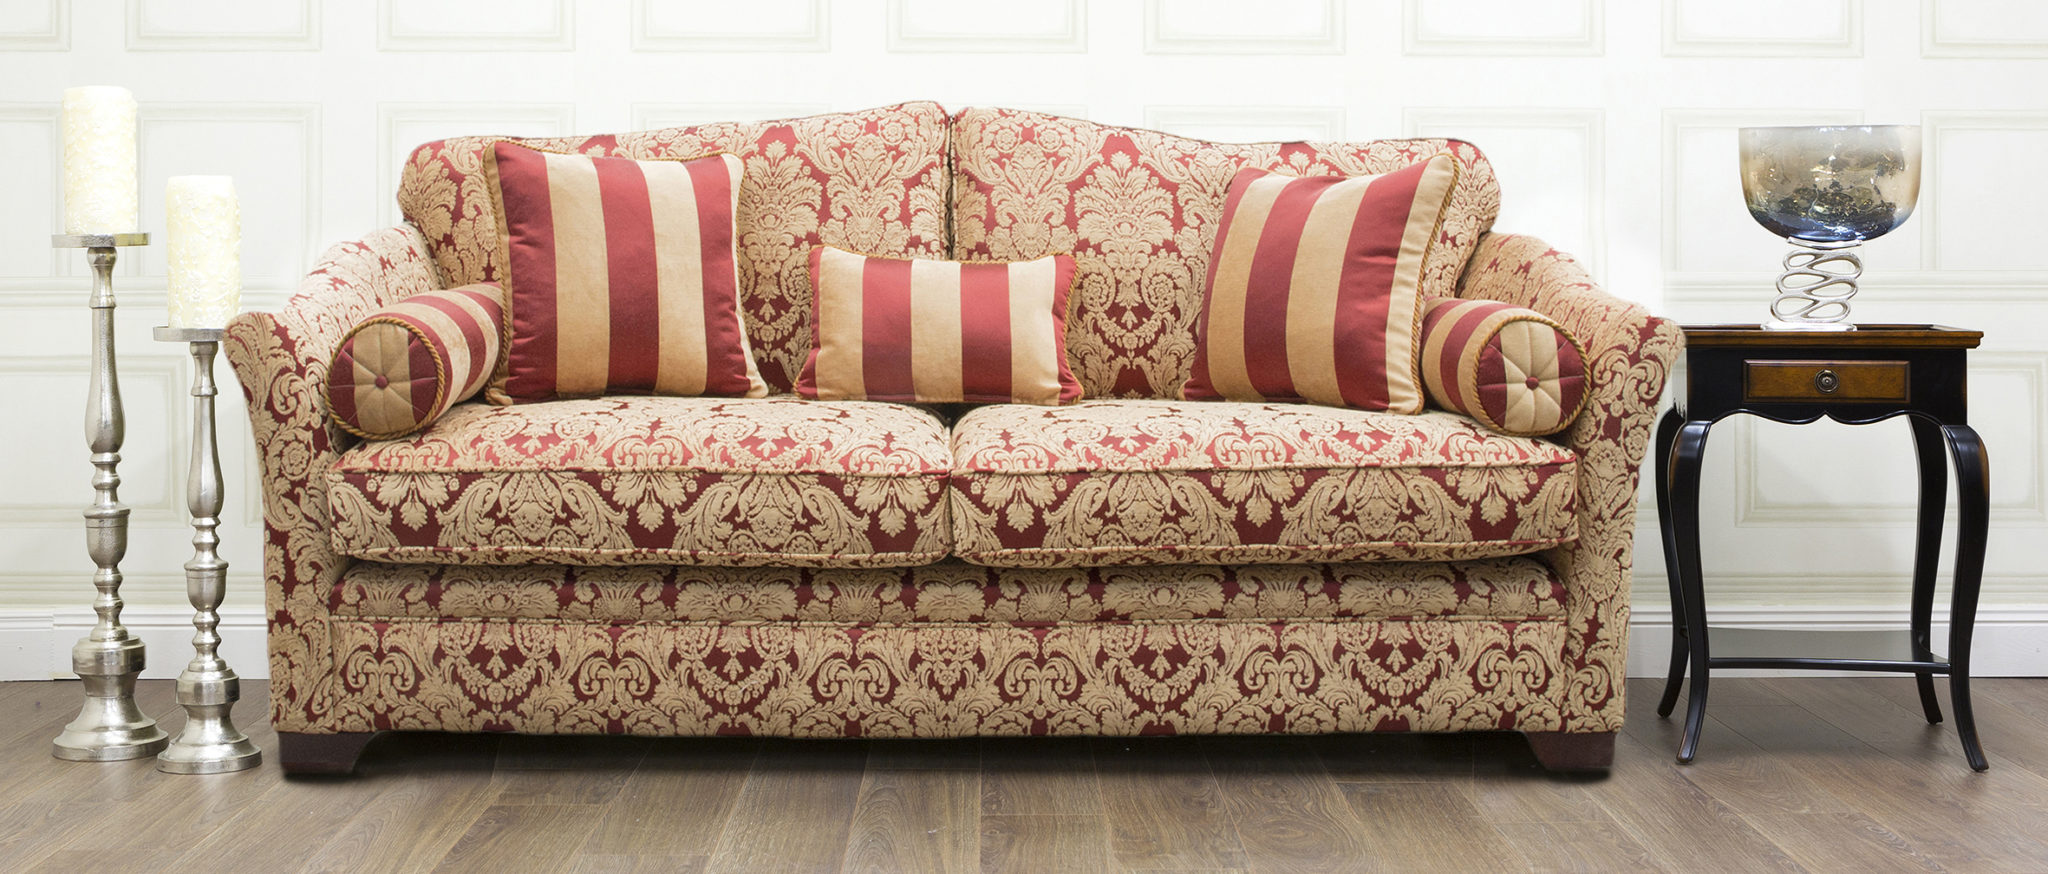 sofa collection charity leicester most comfortable bed in the world othello sofas and chairs range finline furniture